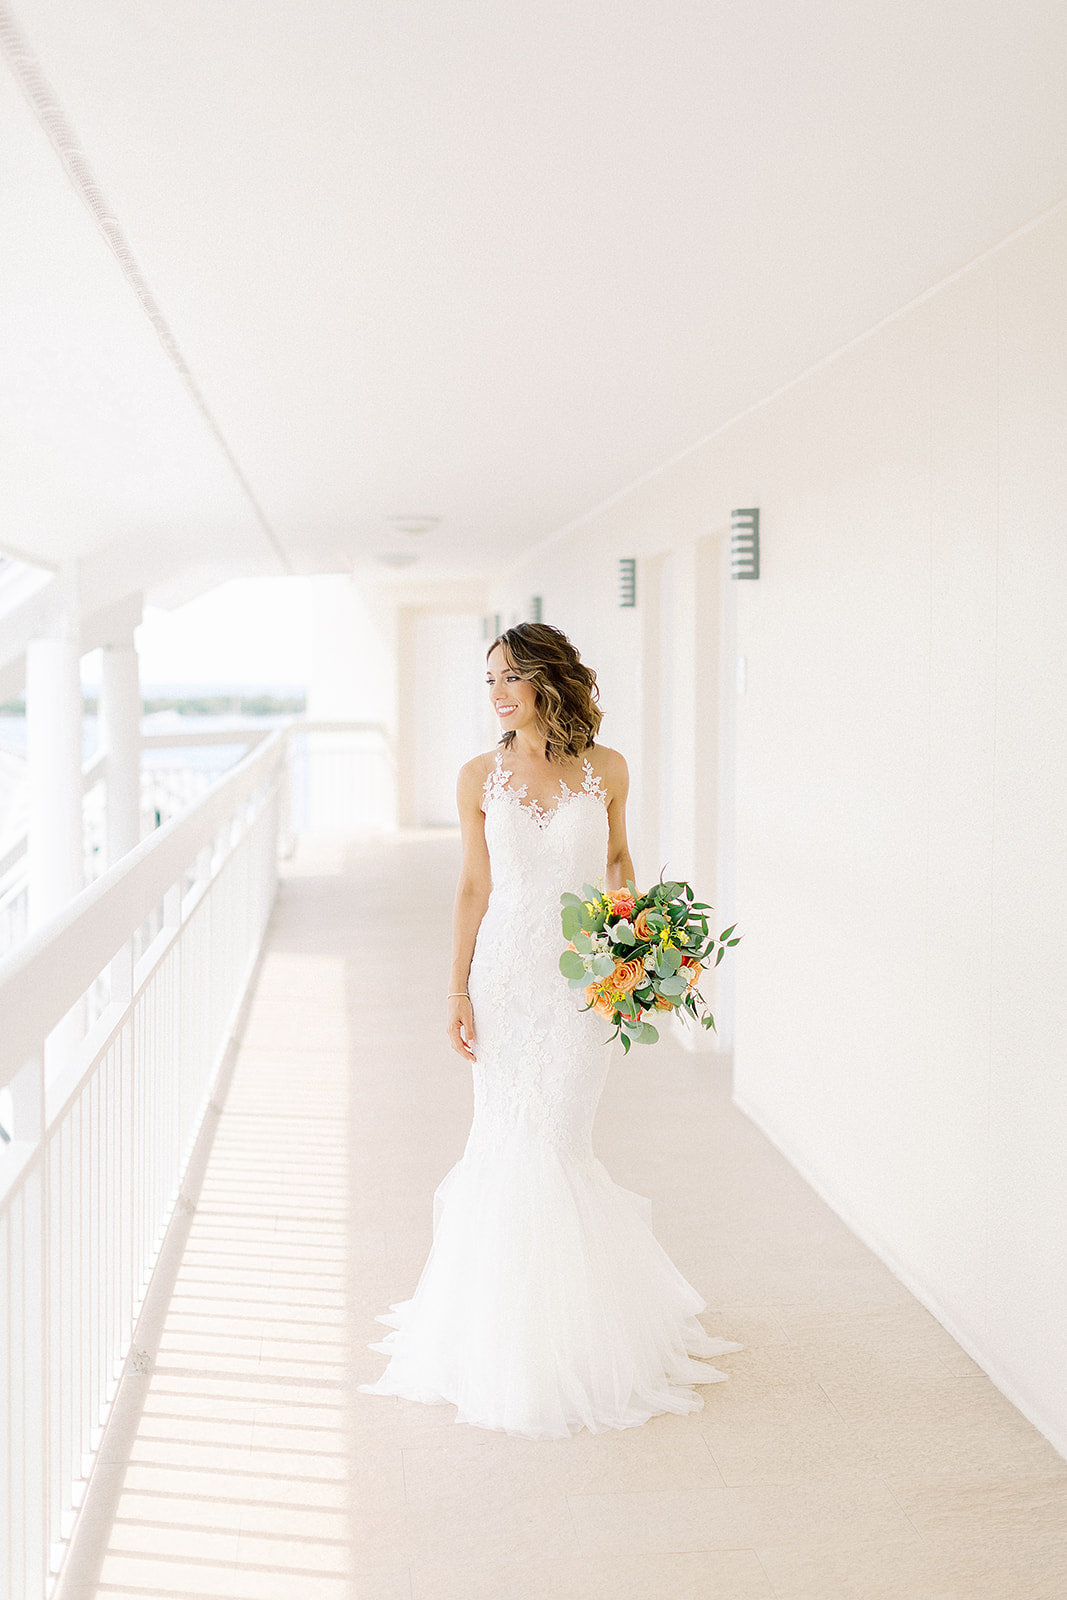 Aubry___Bill_Forsyth_Hyatt_Centric_Key_West_Wedding_Photographer_Casie_Marie_Photography-169